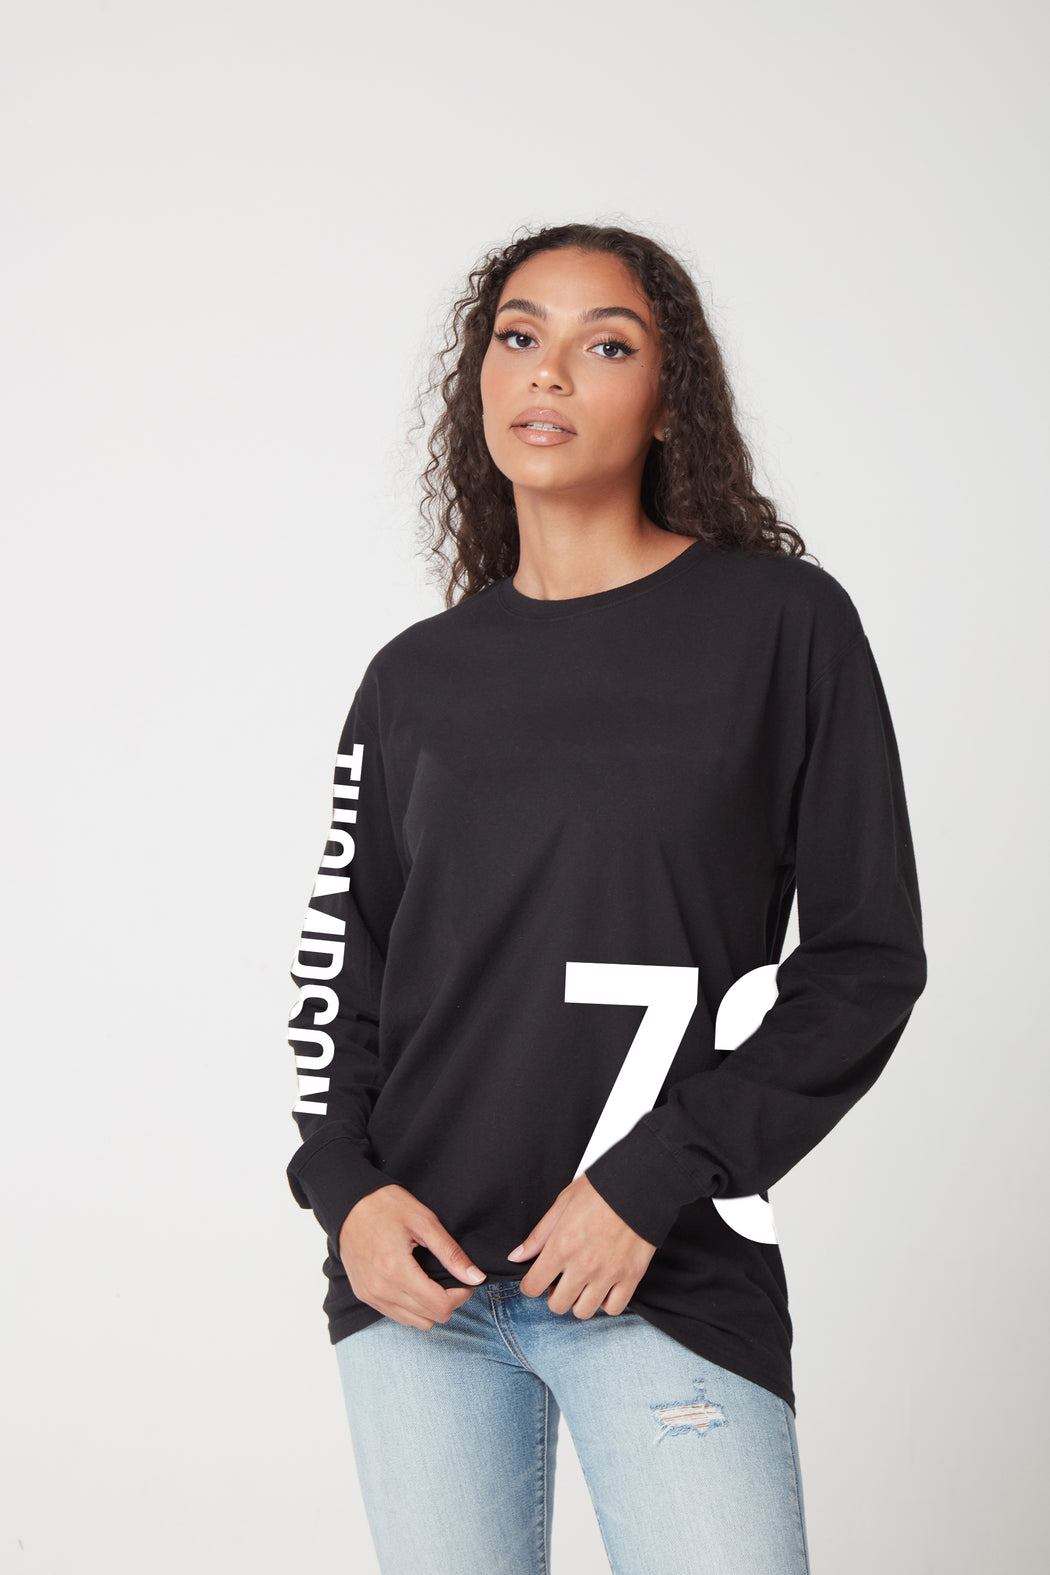 Off Sides Long Sleeve Tee